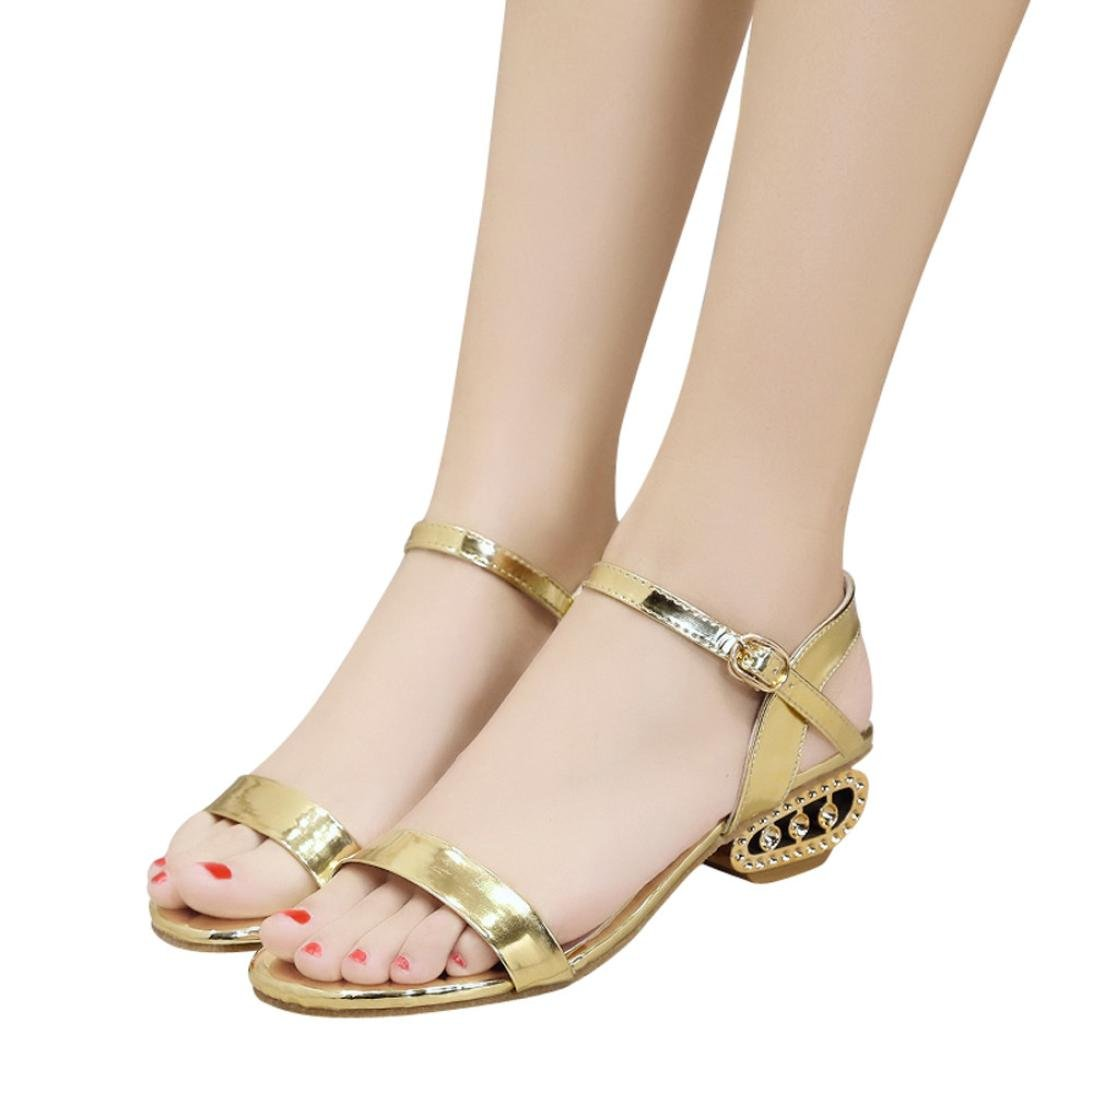 vermers Women Shoes Clearance - Ladies Fashion Ankle Mid Heel Block Party Open Toe Sandals(US:6, Gold) by vermers